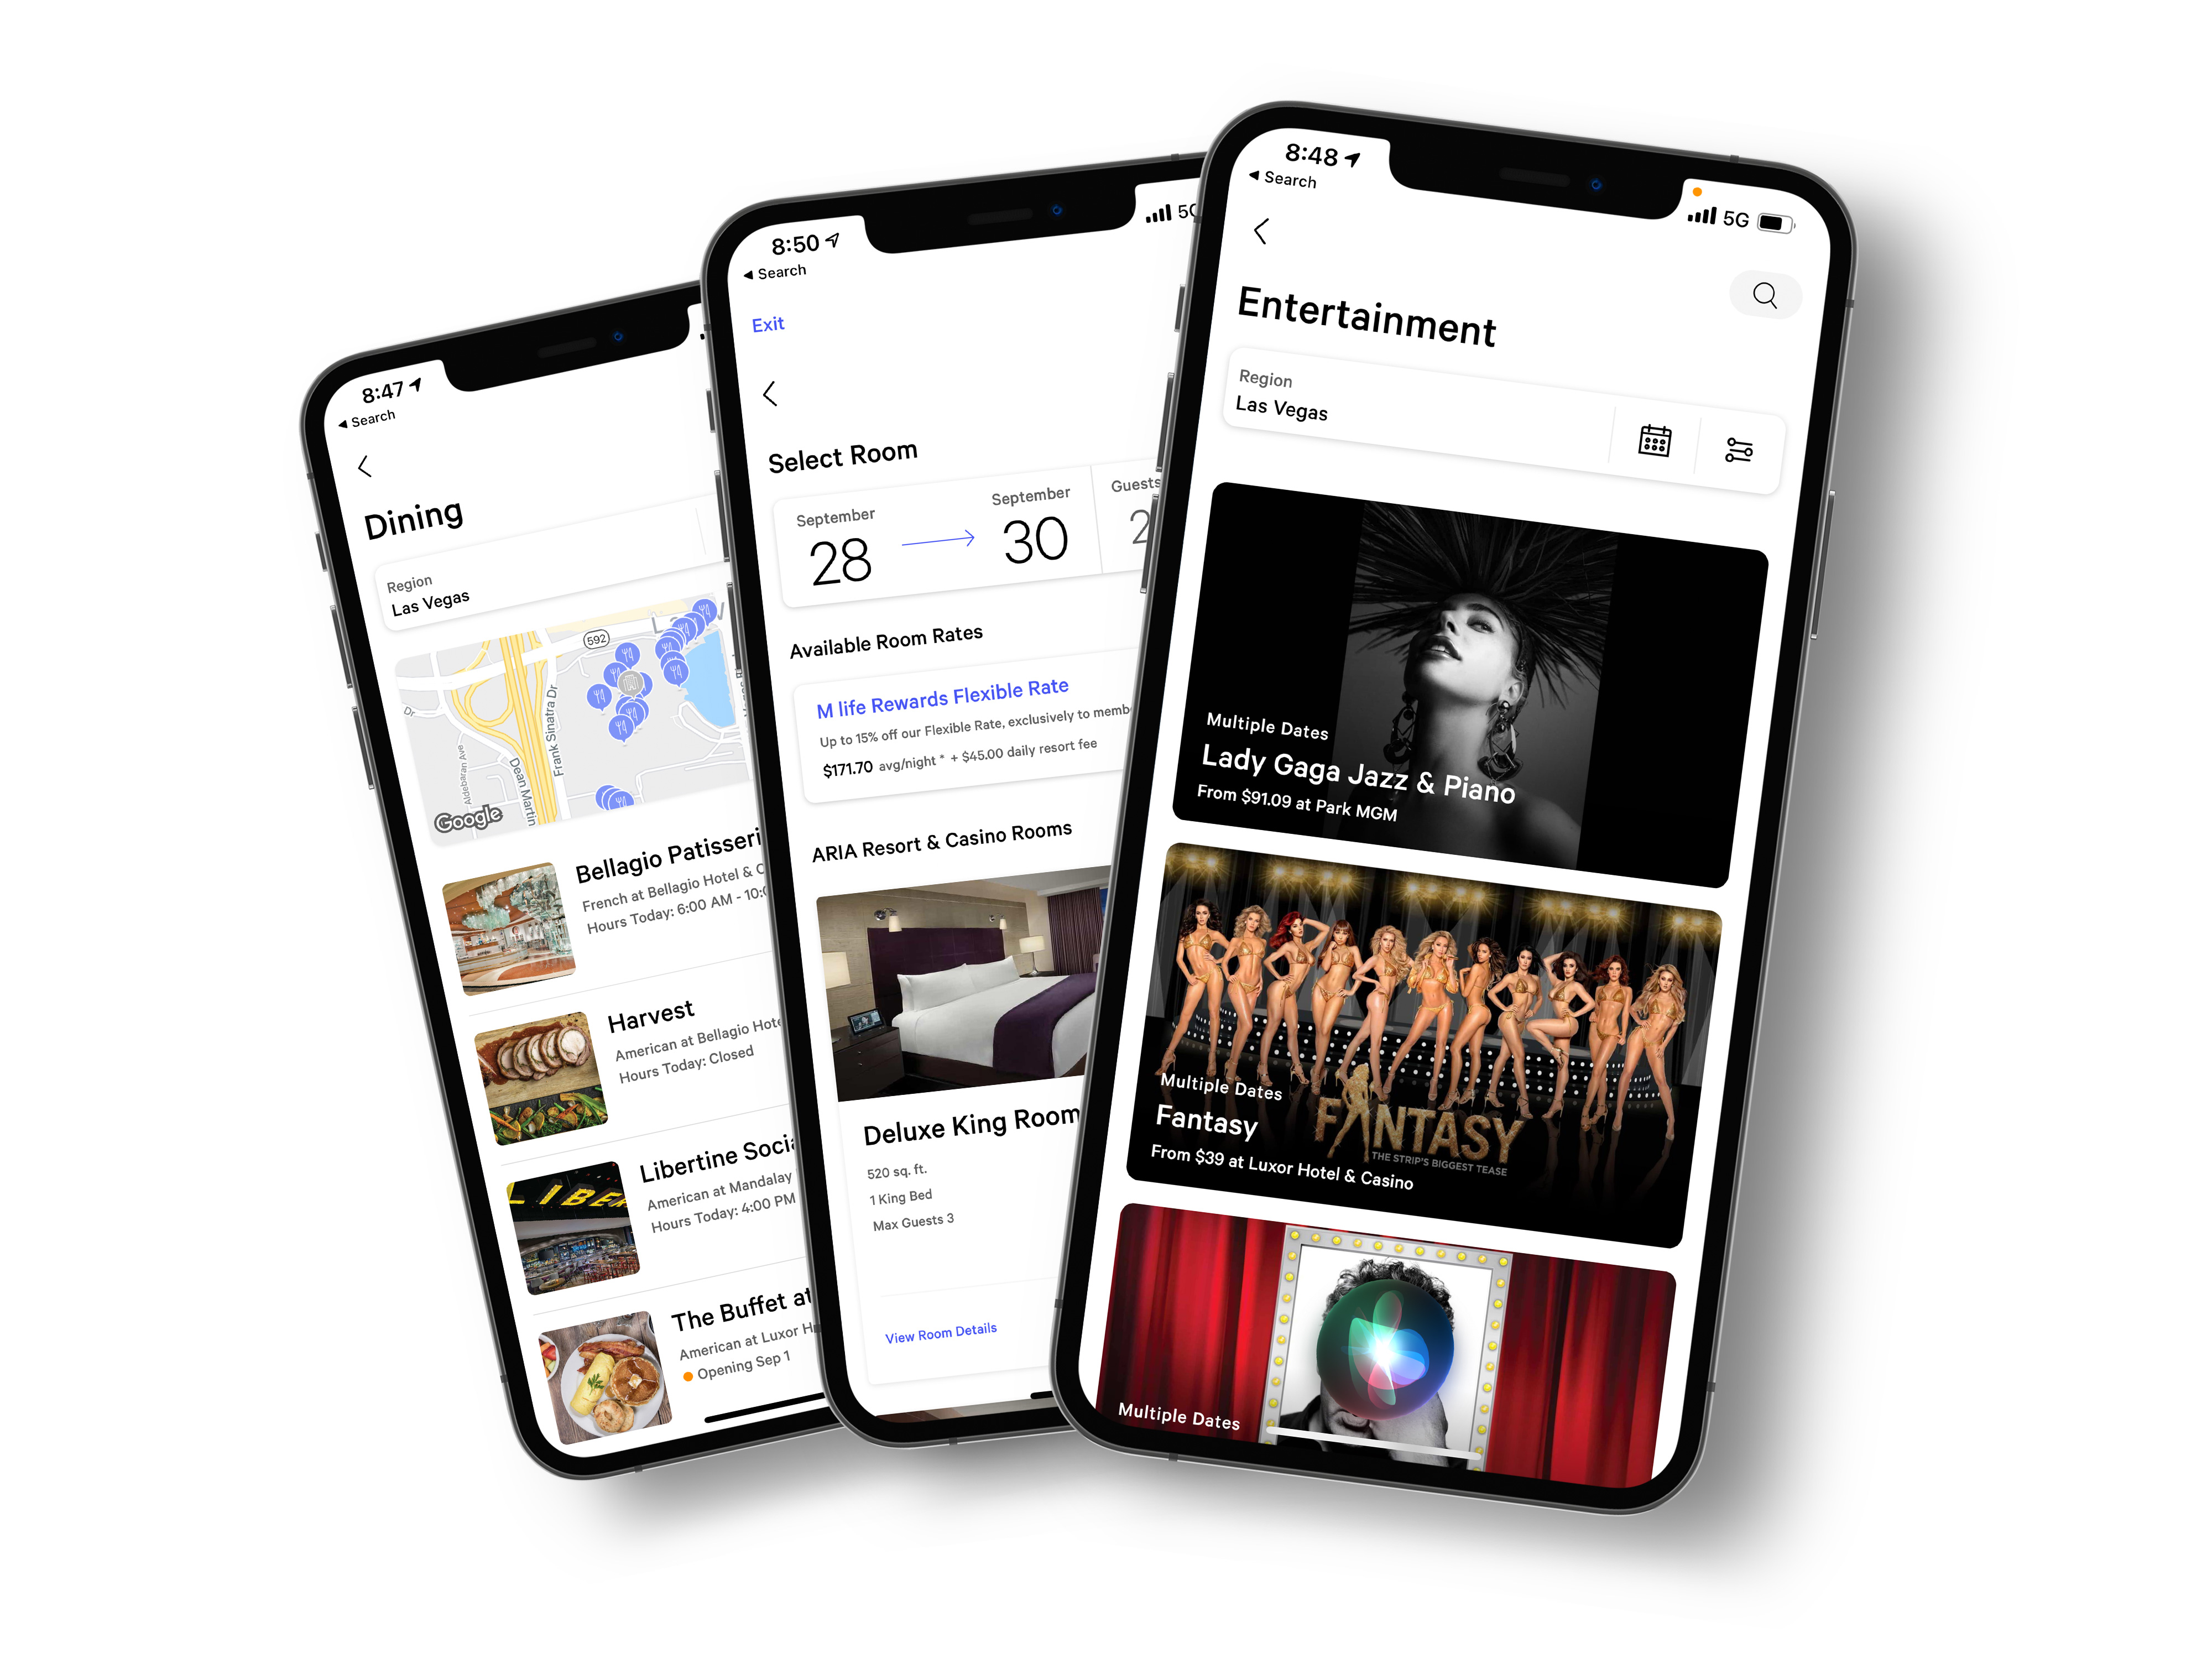 Image of various MGM mobile app screens